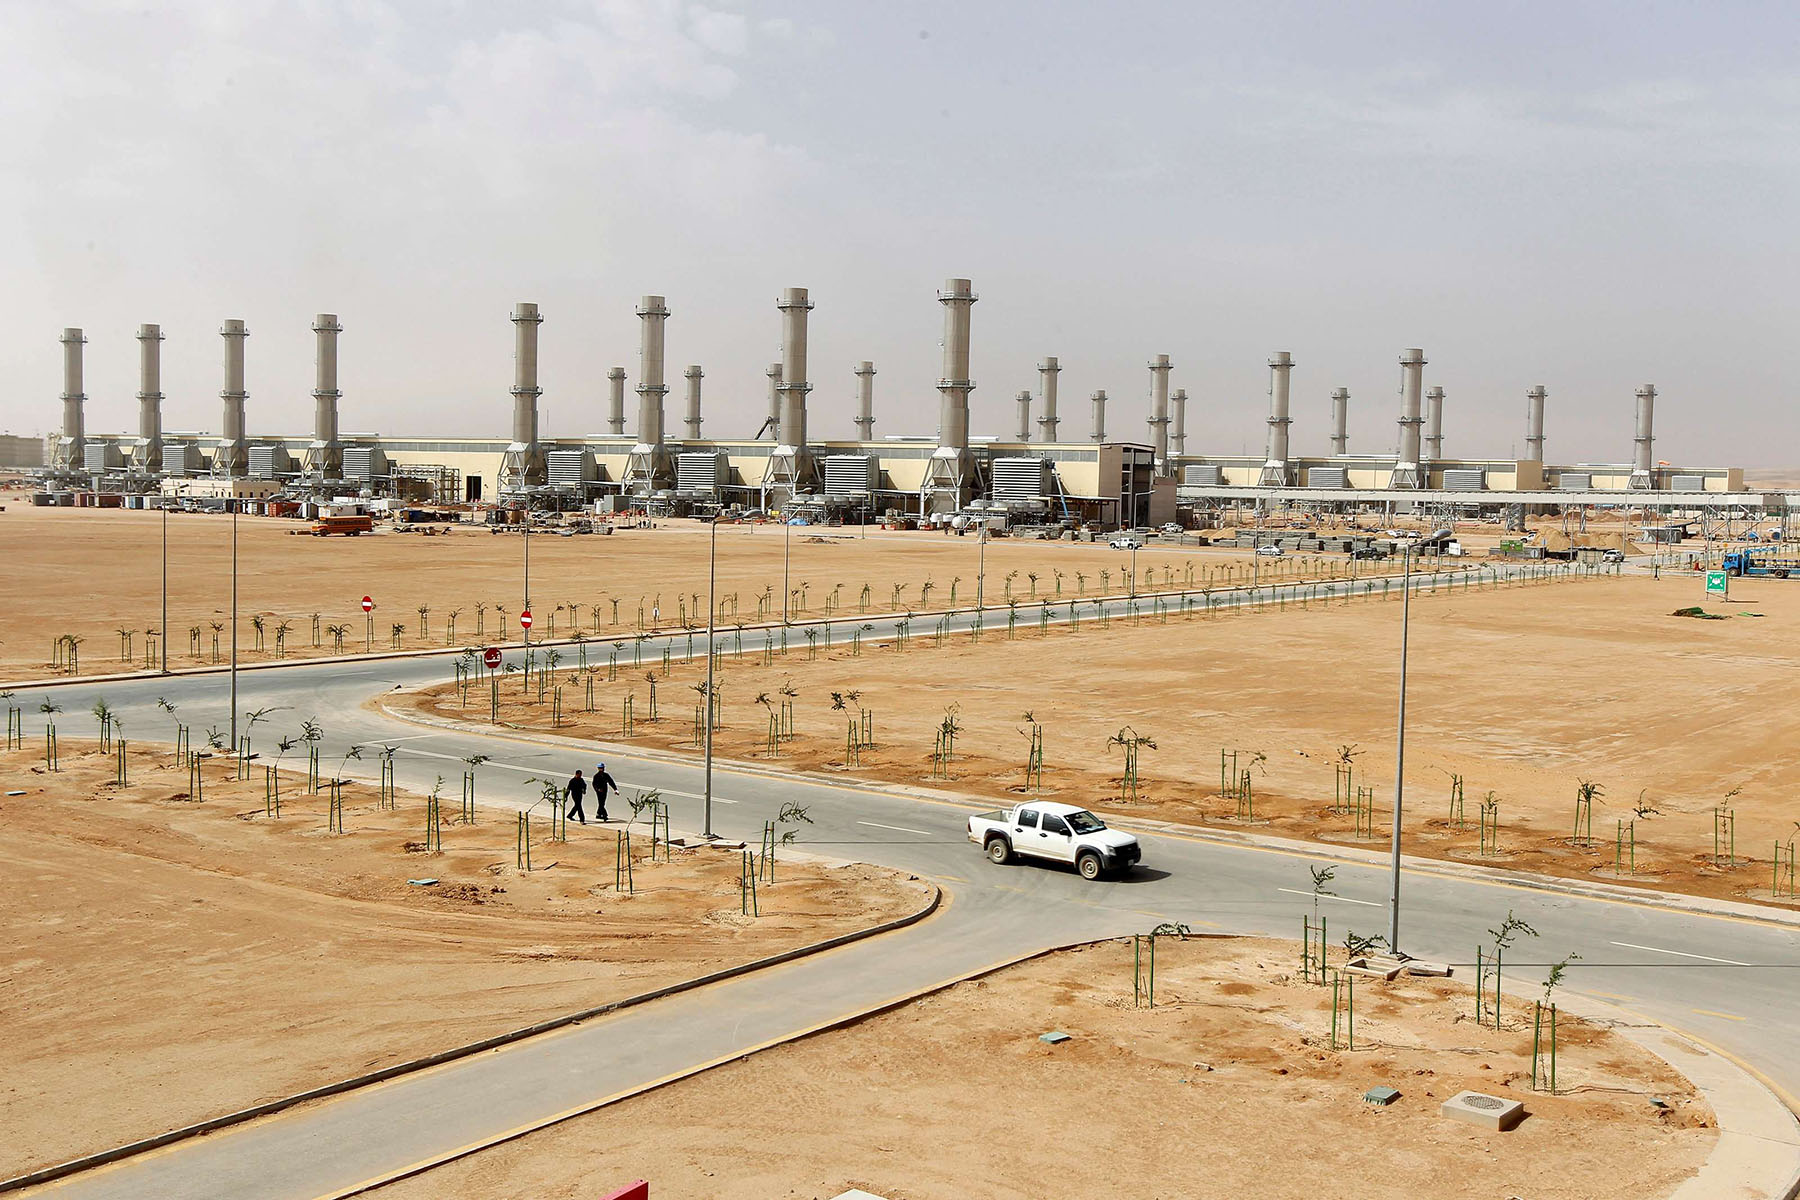 A power plant at Saudi Electricity Company's Central Operation Area, south of Riyadh. (REUTERS)